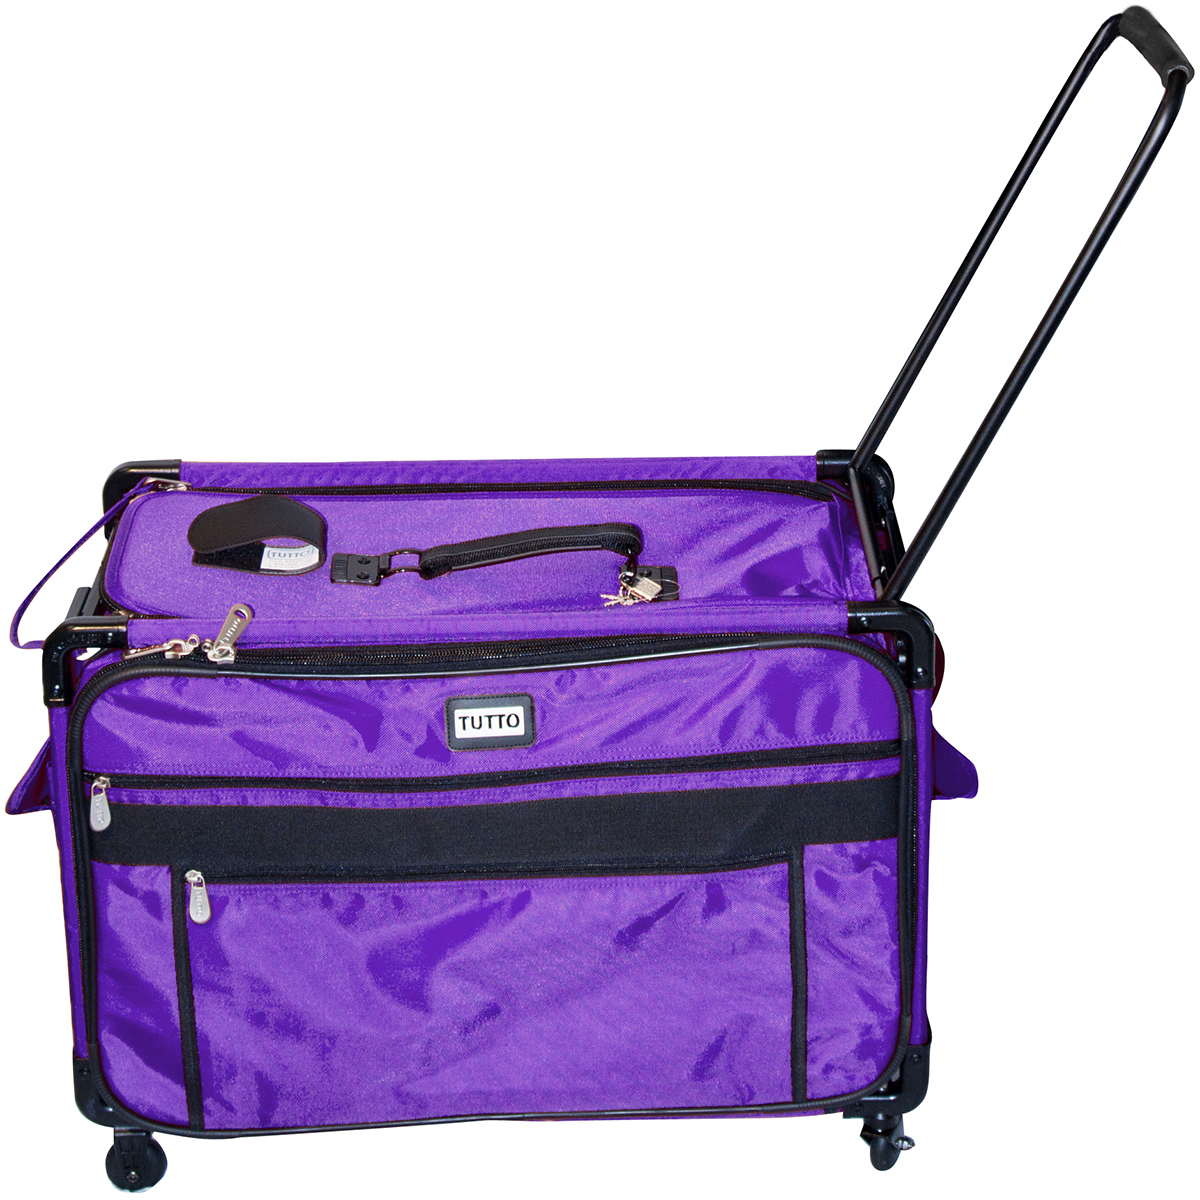 "TUTTO Machine On Wheels Case 27""X16.25""X14"" Purple"